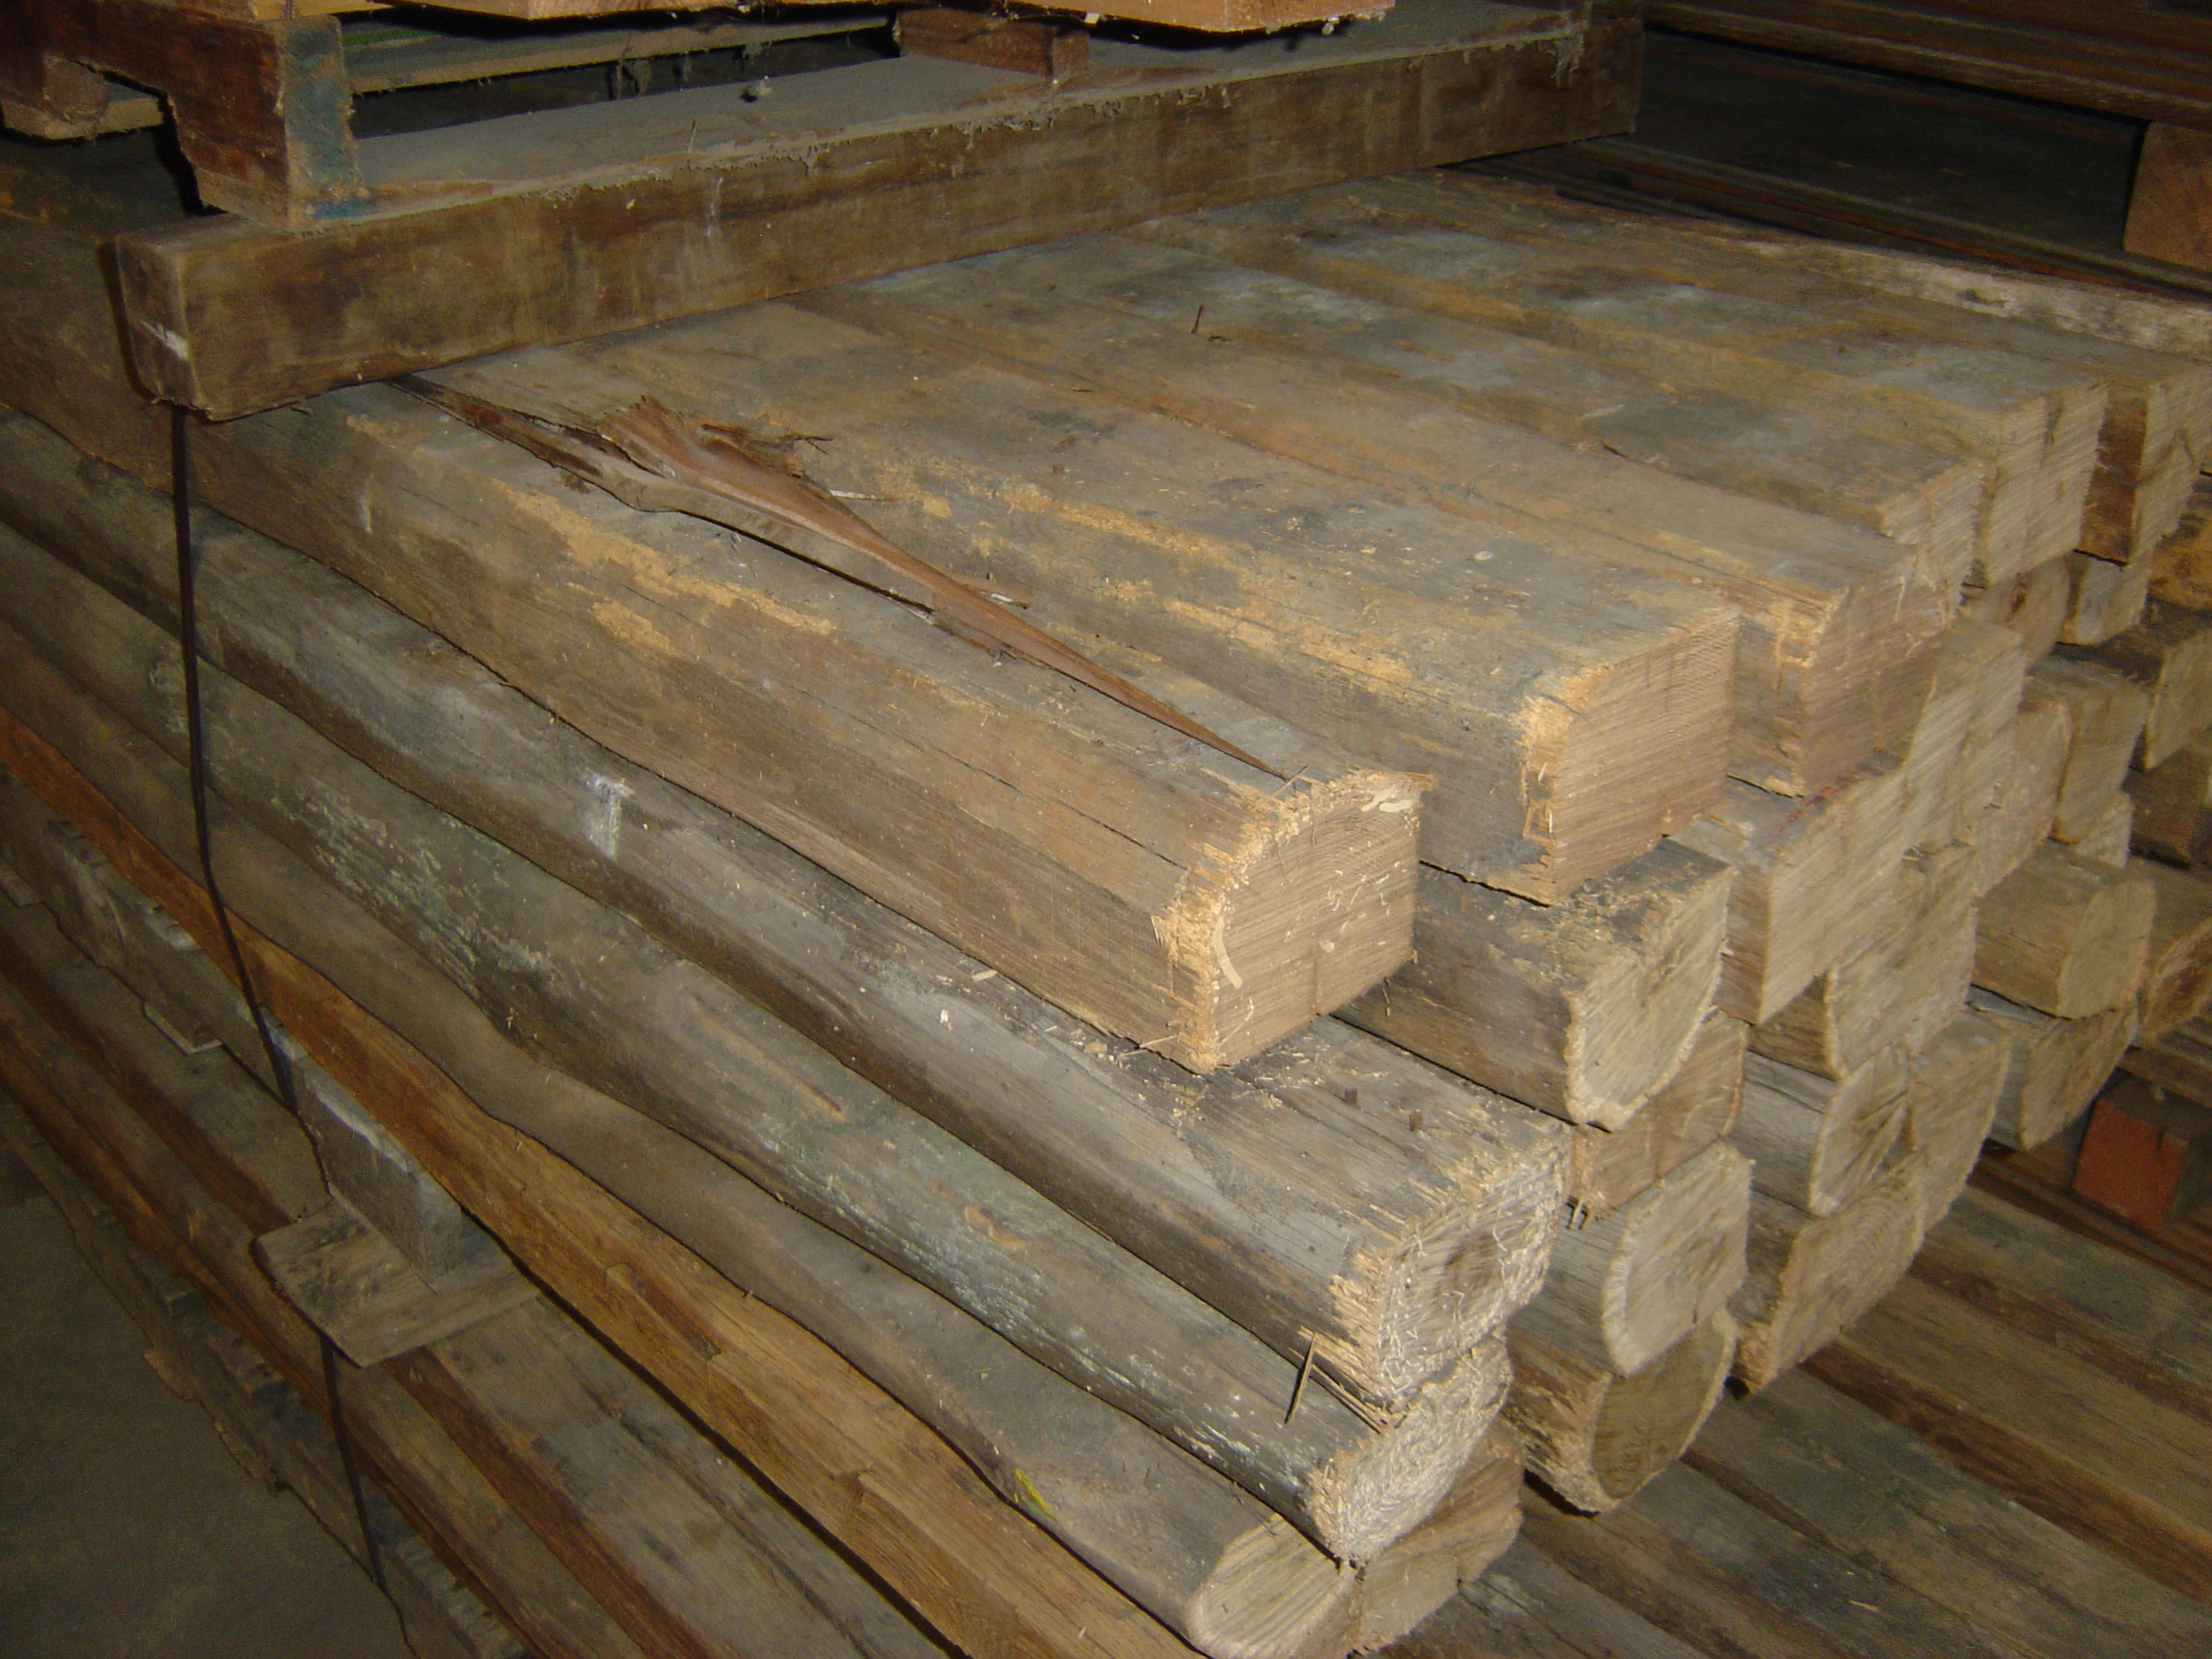 Antique Pennsylvania Barn Beams for Stained Reclaimed Wood Countertops